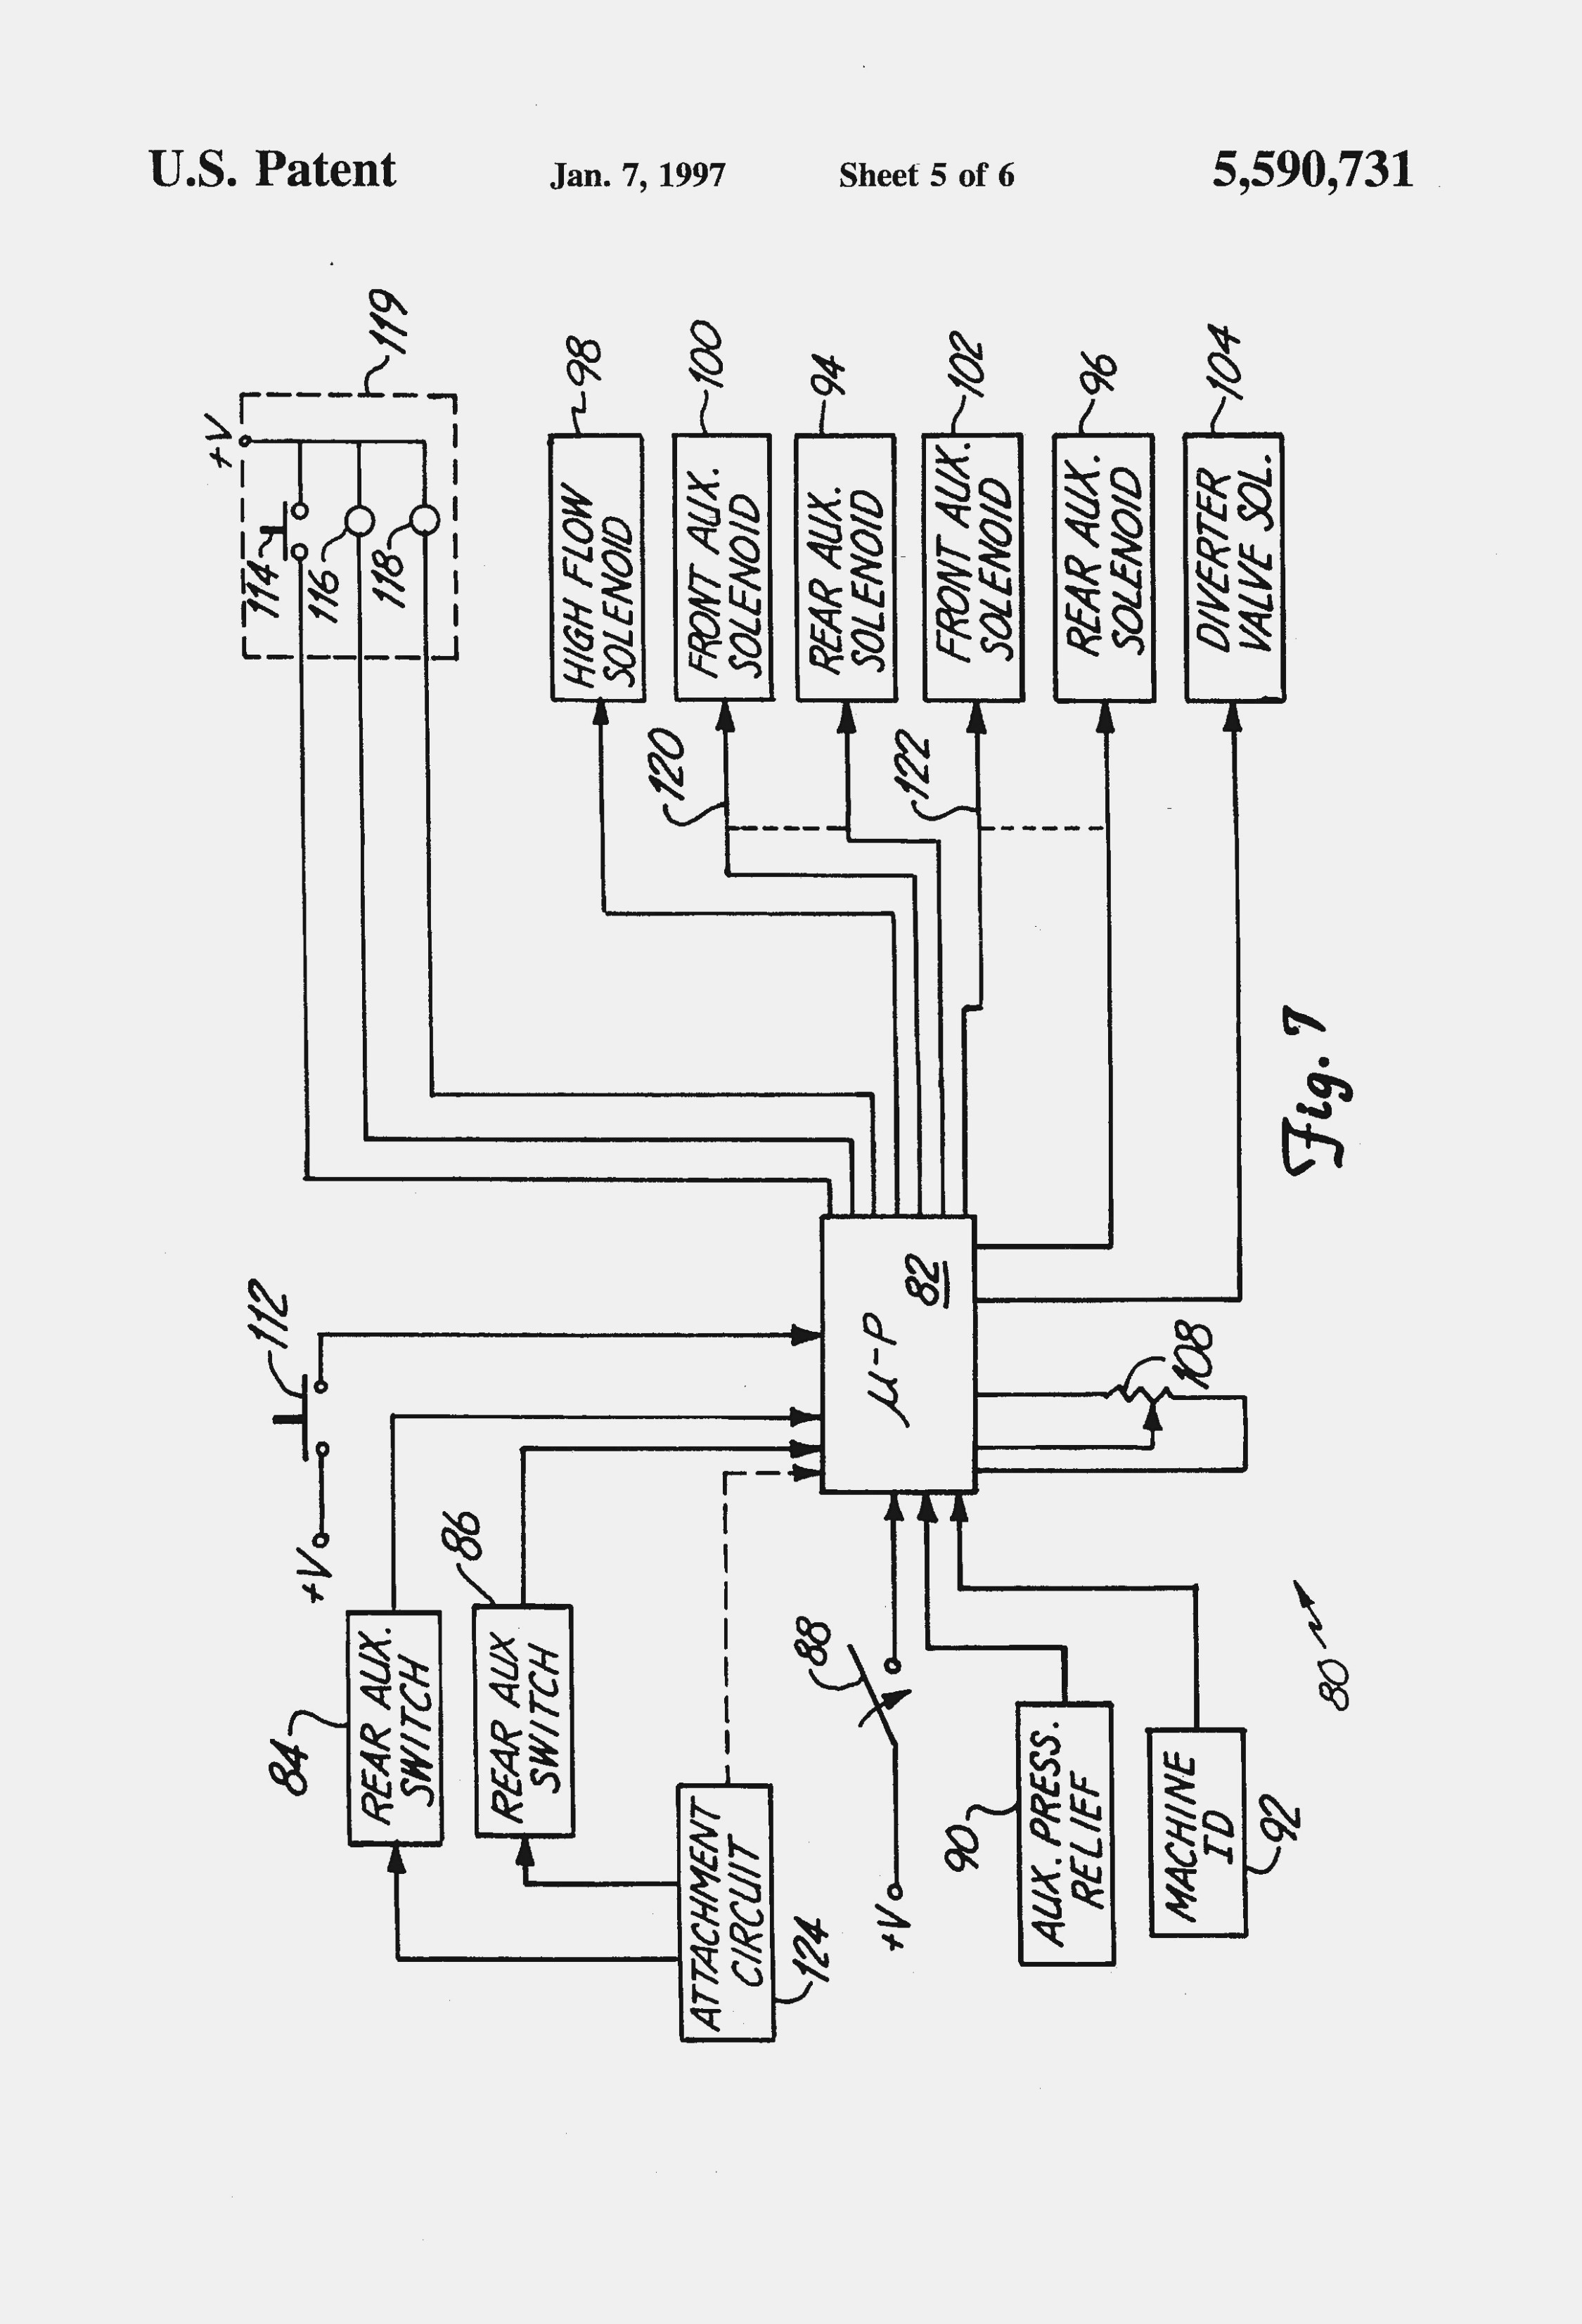 Wiring Schematic with Arduino Wiring Diagram Washing Machine with Dryer with Images Of Wiring Schematic with Arduino